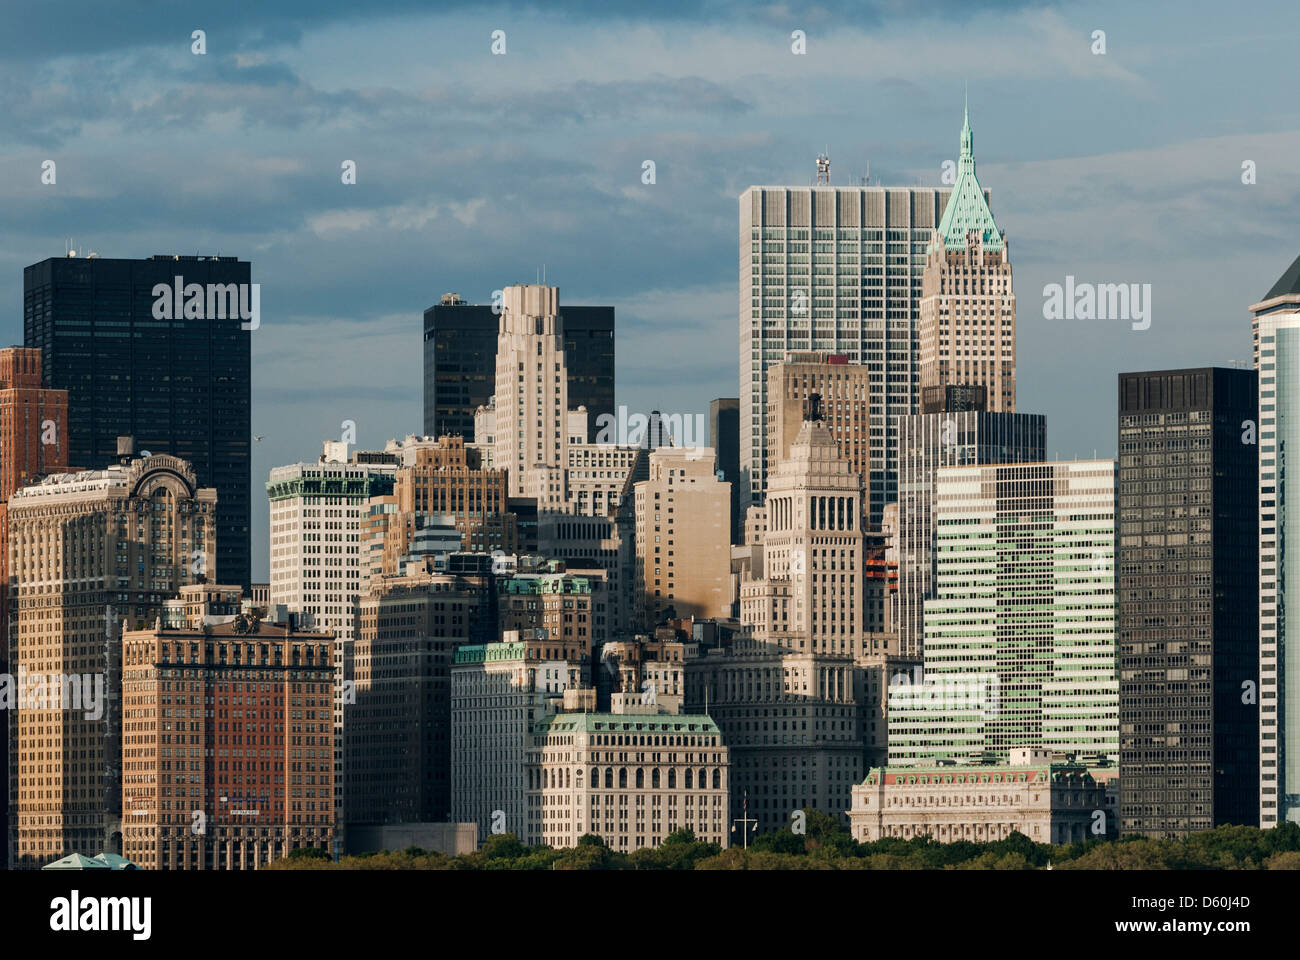 Downtown Manhattan Skyline without the former World Trade Center, New York City Stock Photo